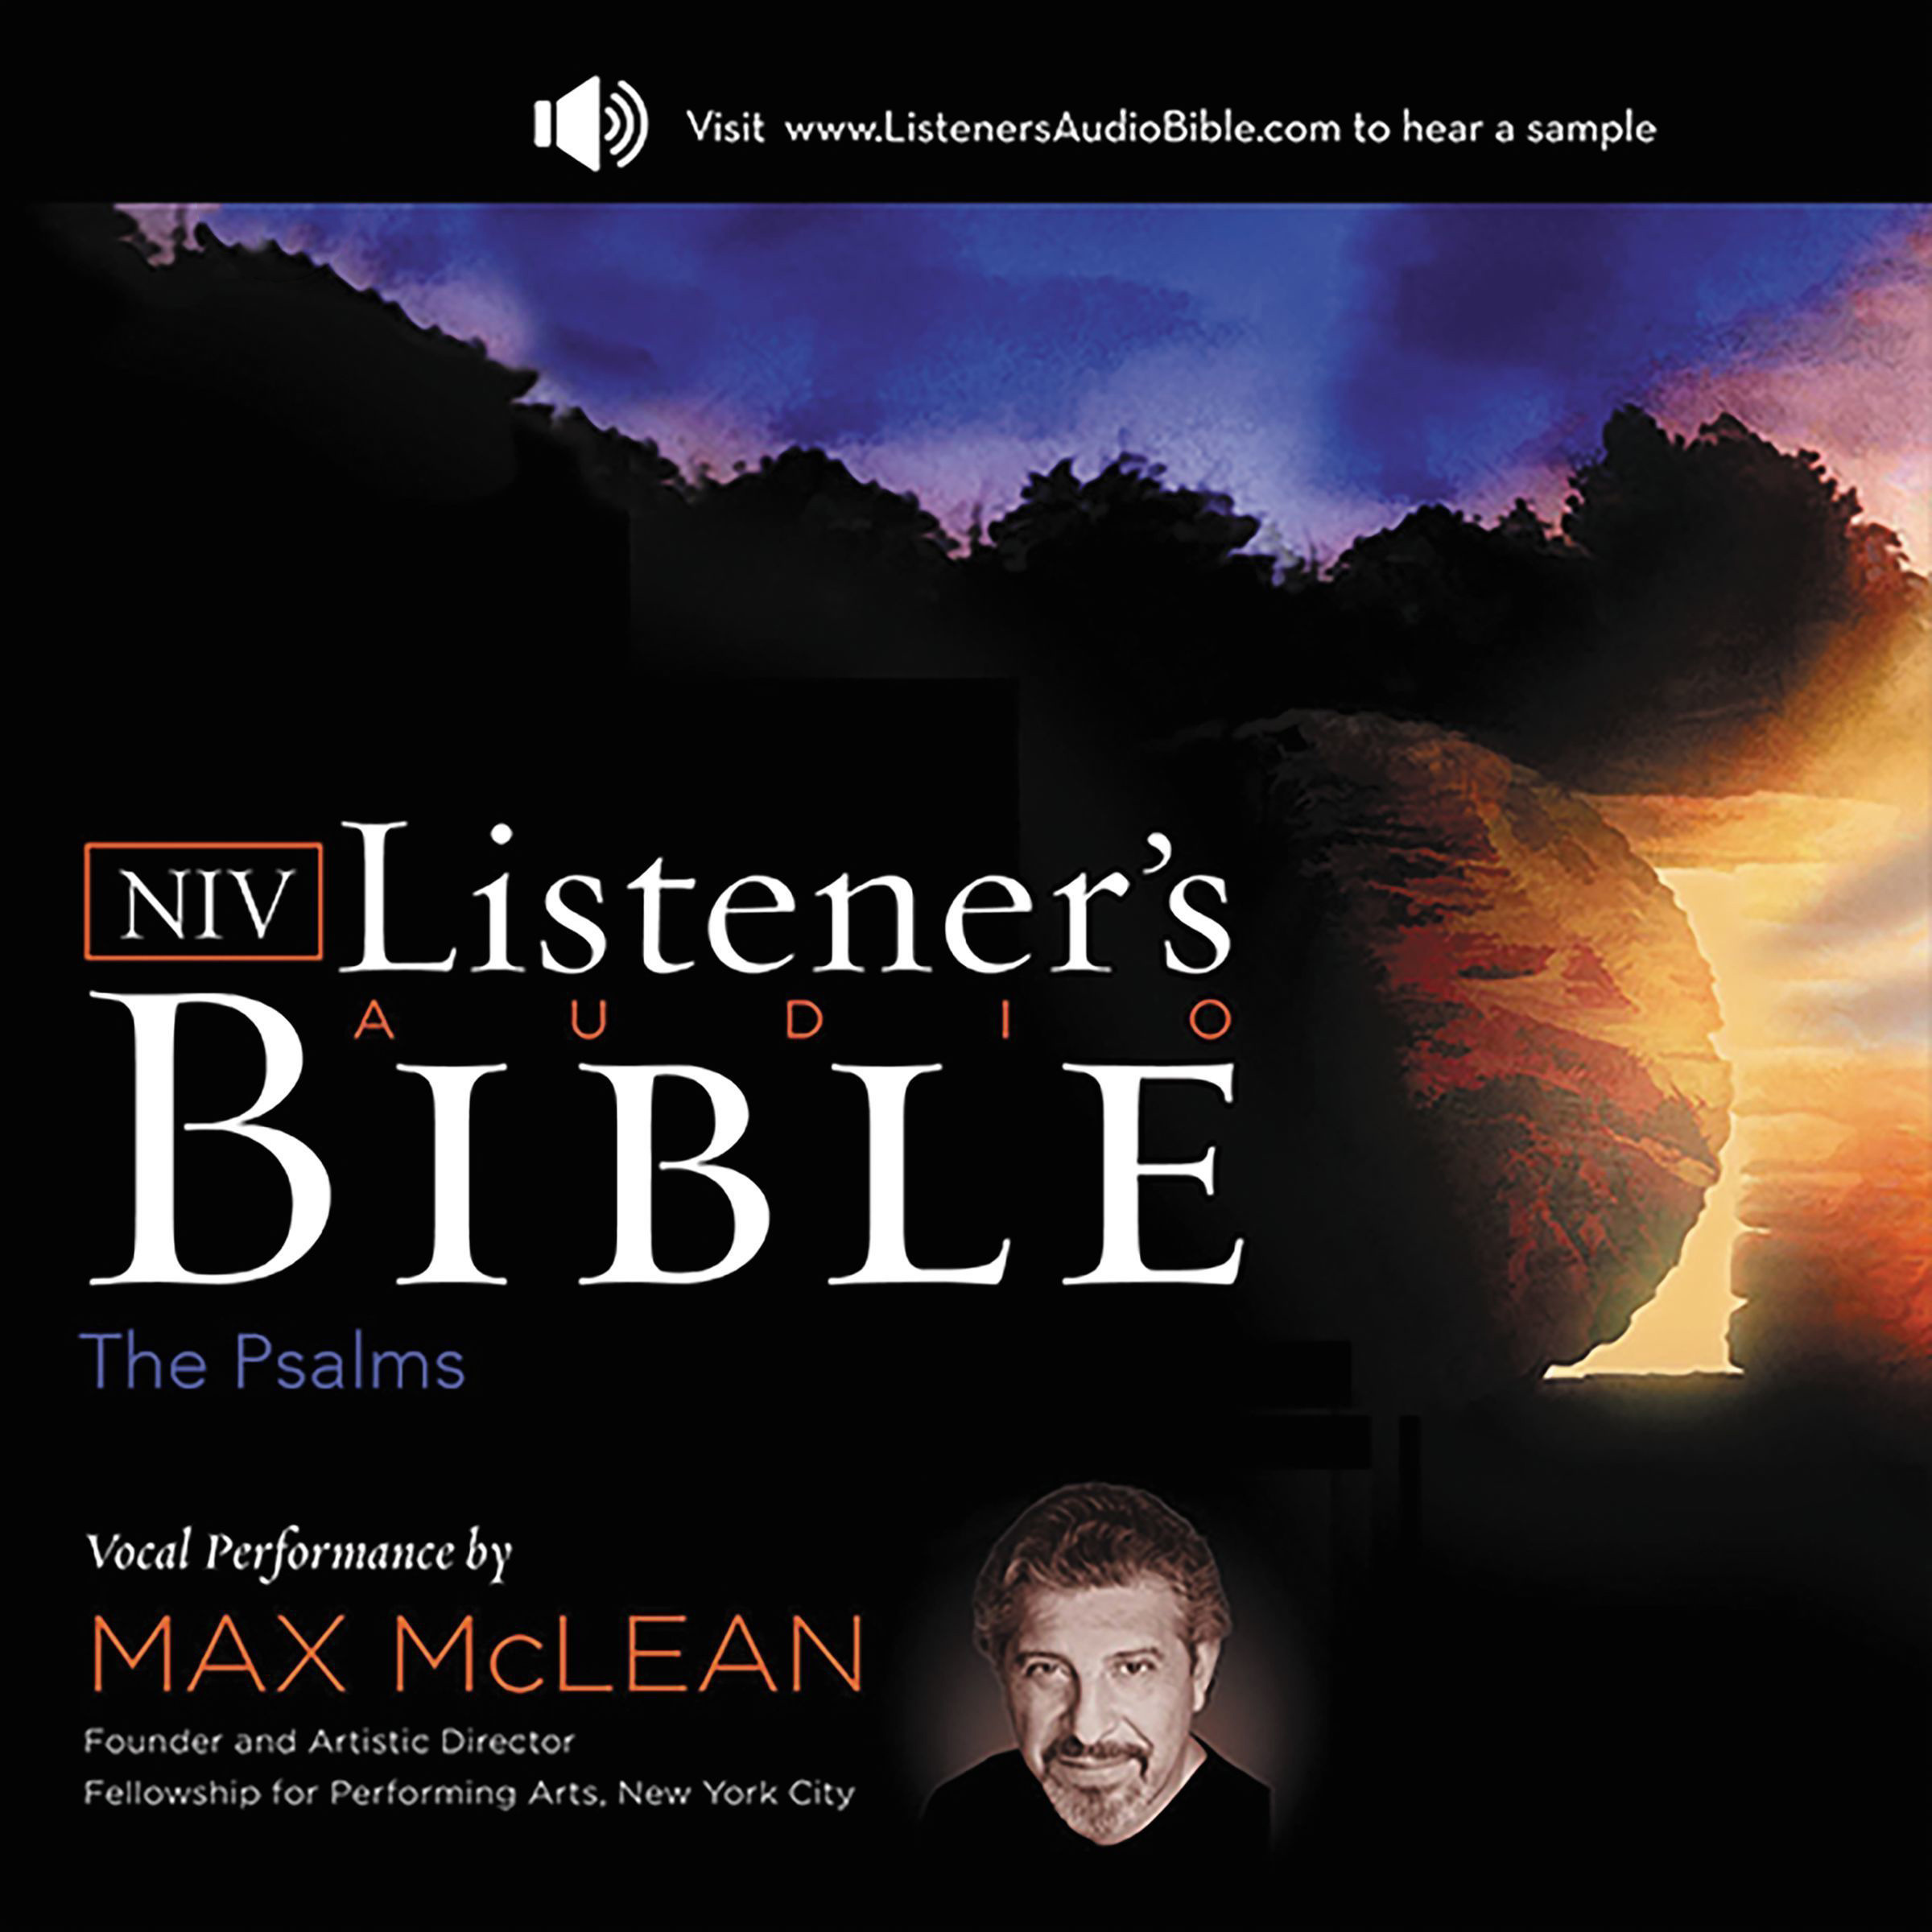 Printable NIV, Listener's Audio Bible, Book of Psalms, Audio Download: Vocal Performance by Max McLean Audiobook Cover Art